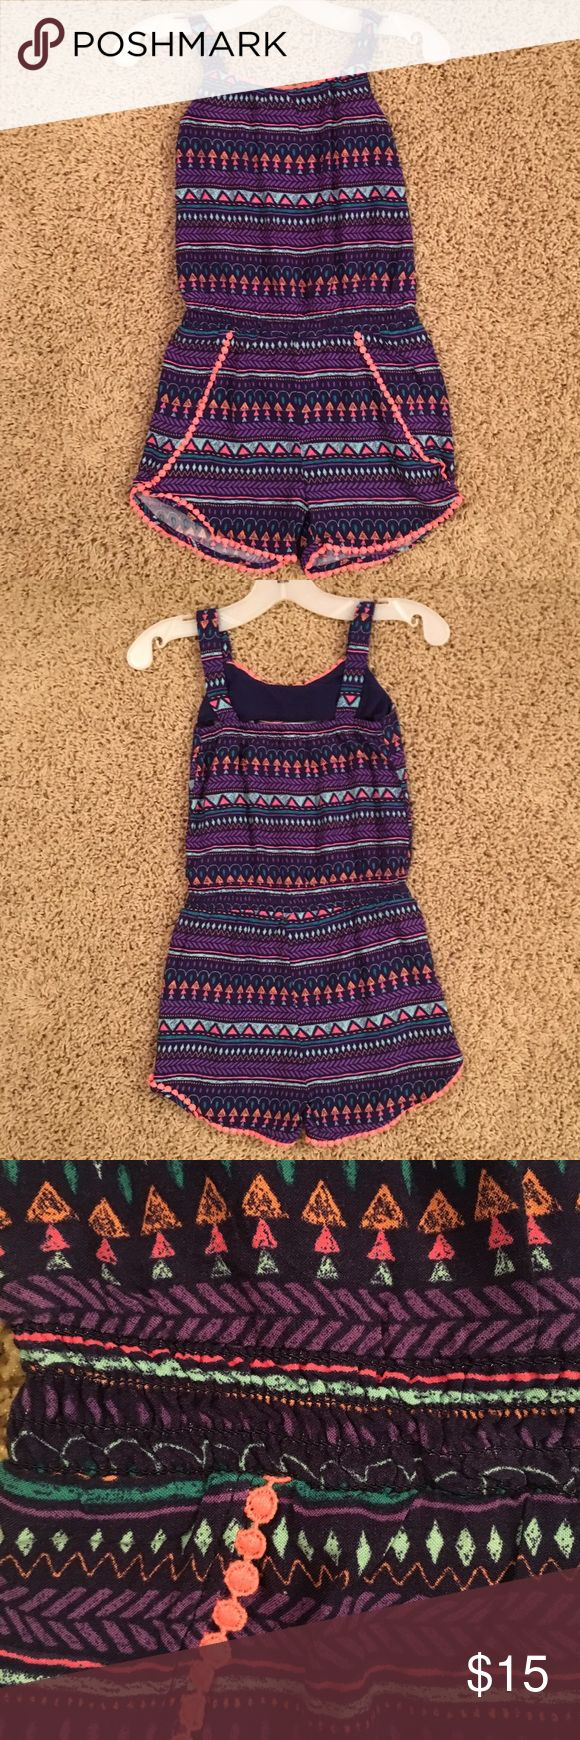 Adorable Kids Cherokee Romper Cute geometric print romper for kids. Cherokee brand (Target) size XS (4/5). Contains black, purple, blue, coral, and orange accents. Perfect for a spring or summer day! Worn once- great condition! Cherokee One Pieces